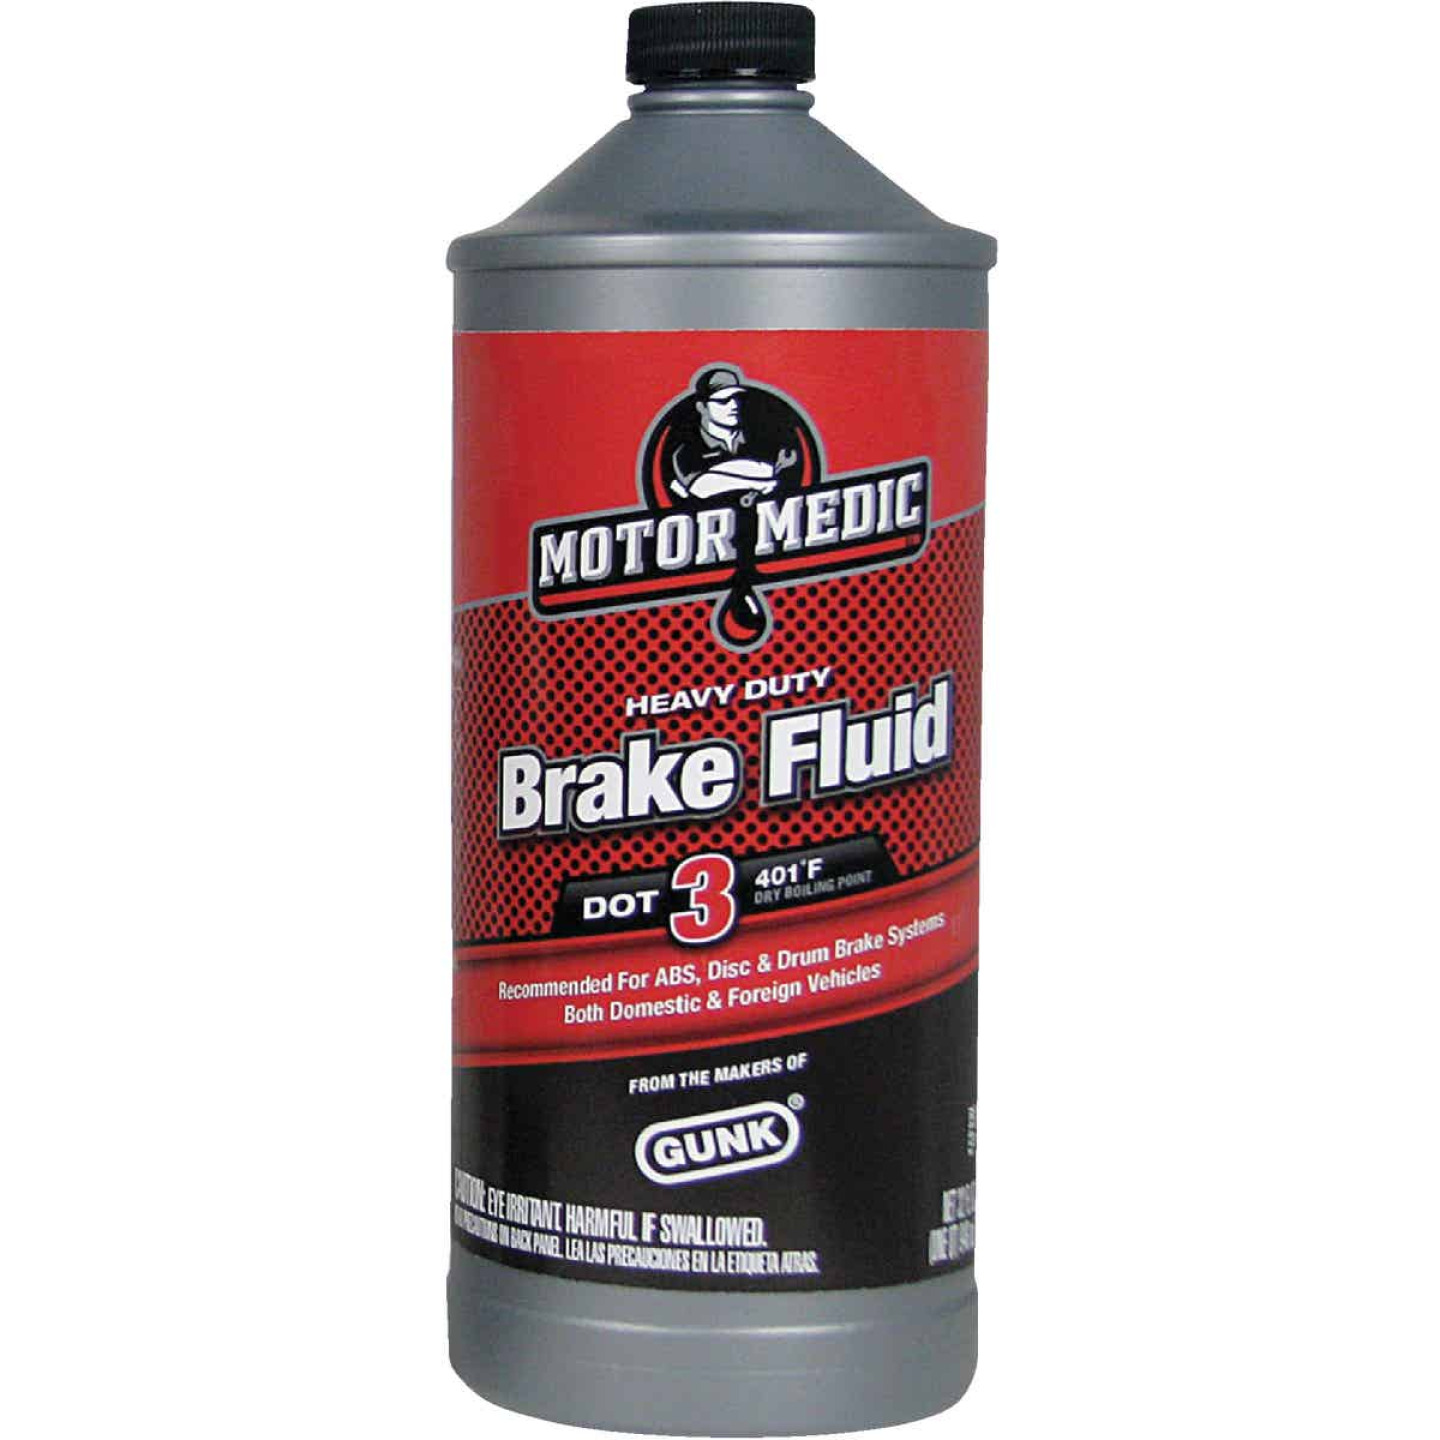 MotorMedic 32 Oz. Heavy-Duty DOT 3 Brake Fluid Image 1